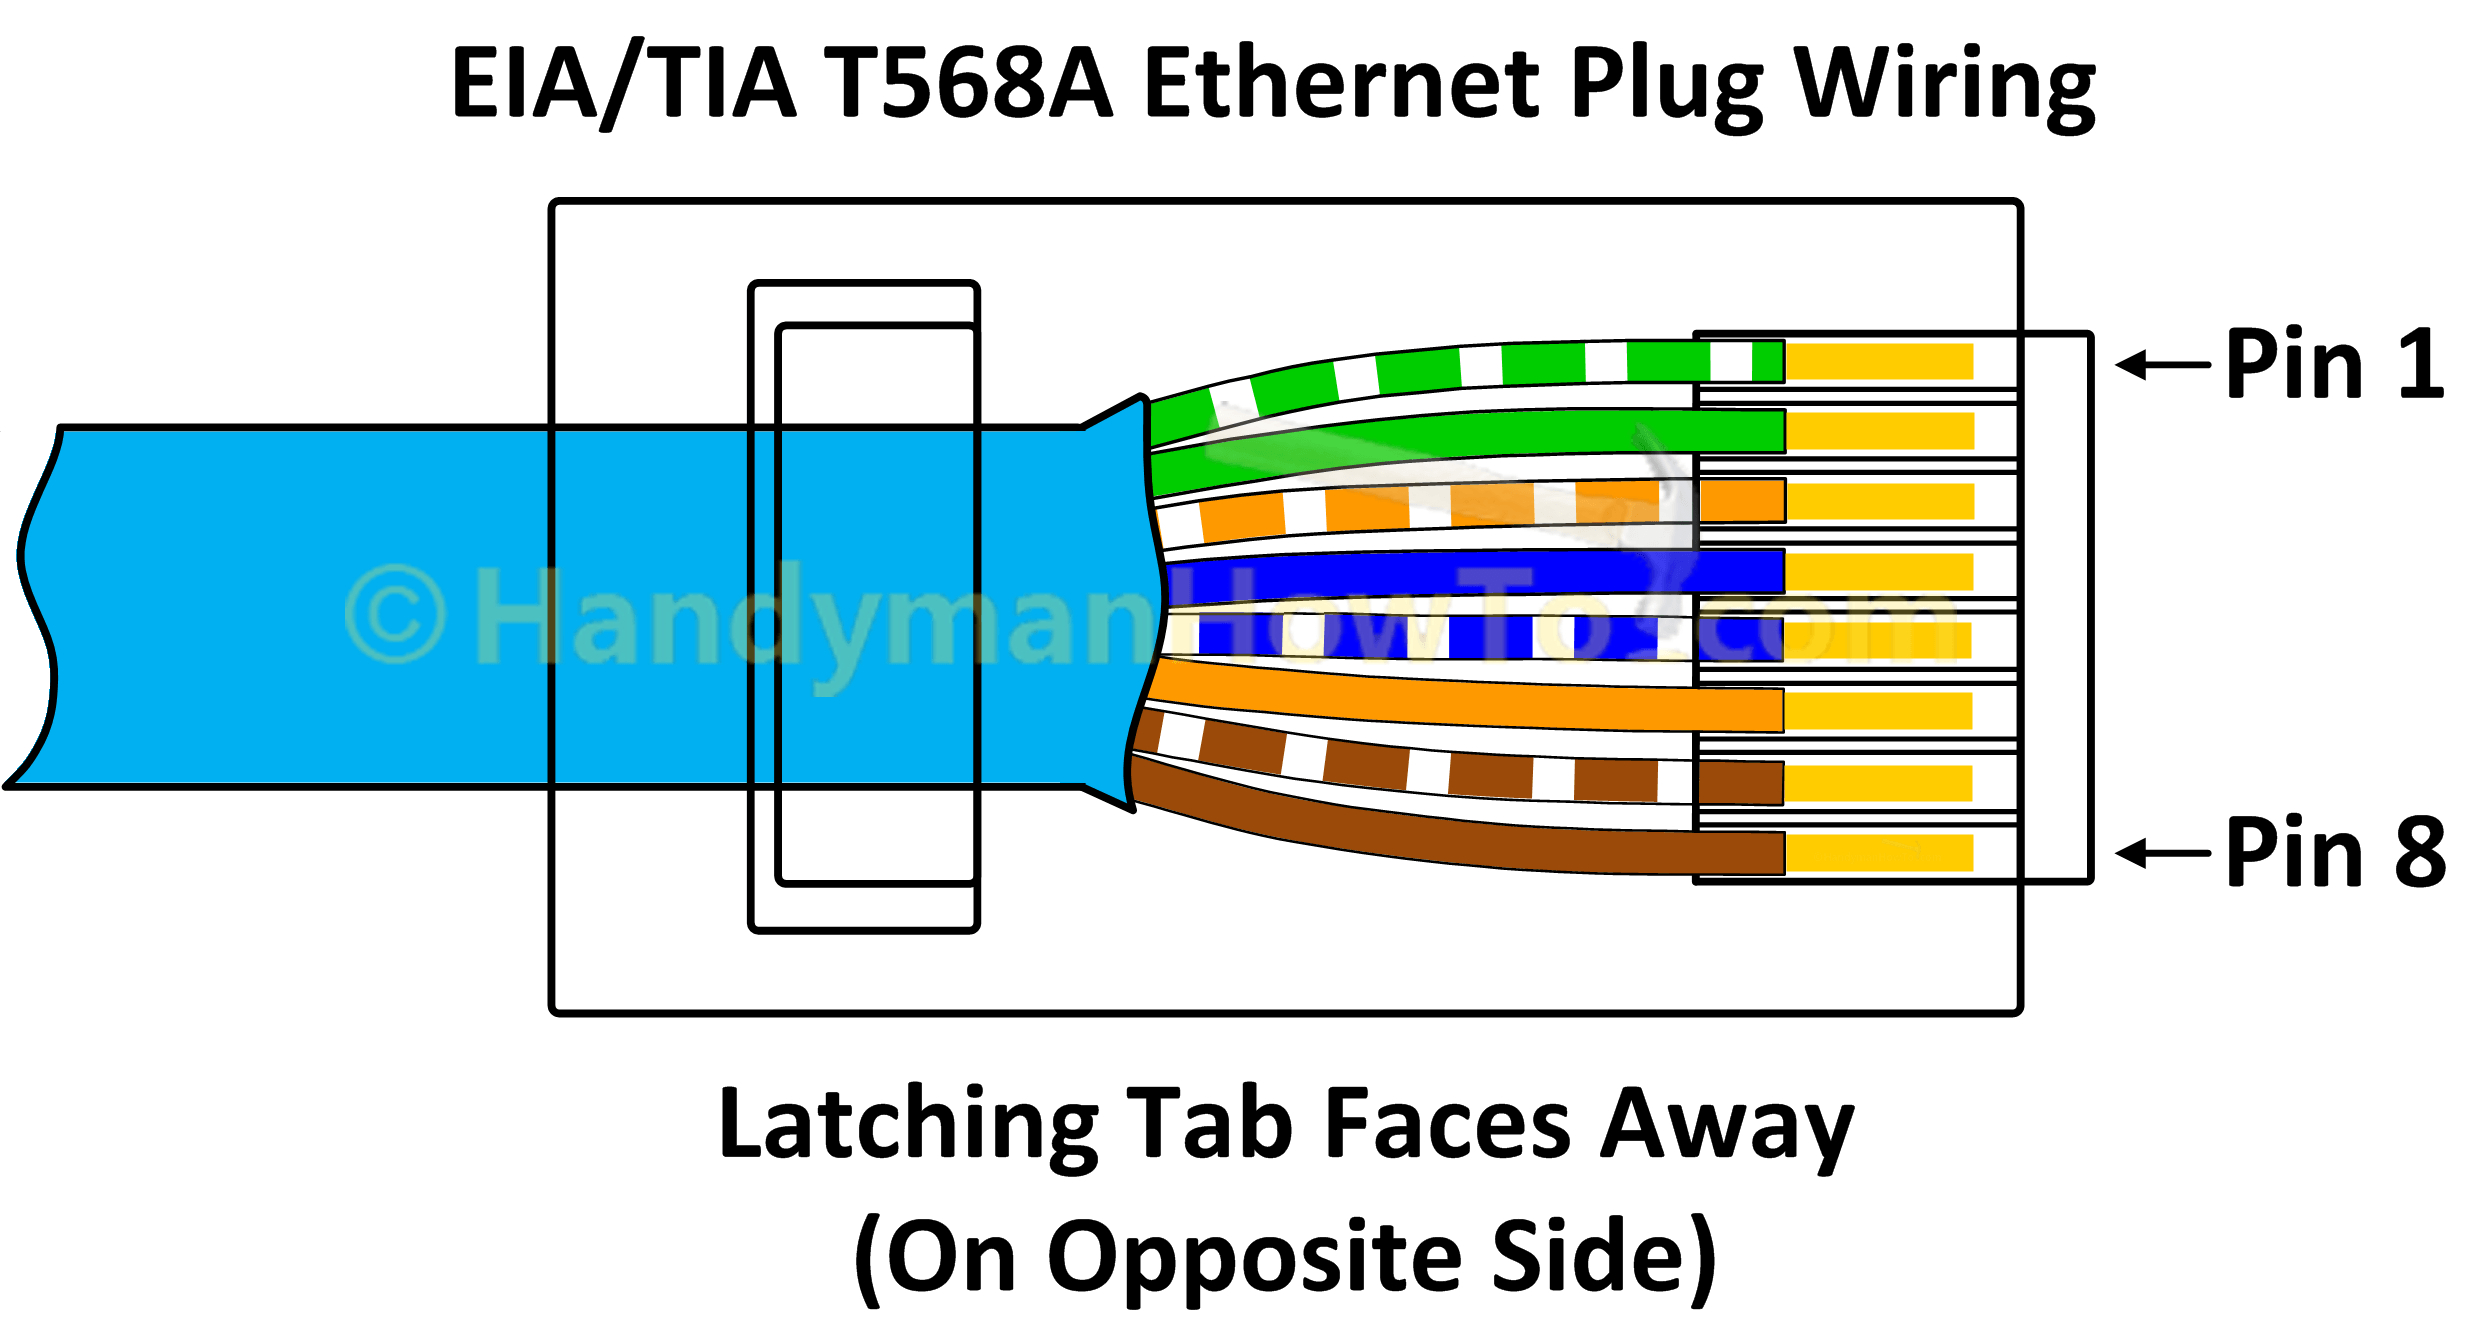 Cat 6 Ethernet Cable Wiring Diagram - Wiring Diagram Data - Ethernet Cable Wiring Diagram